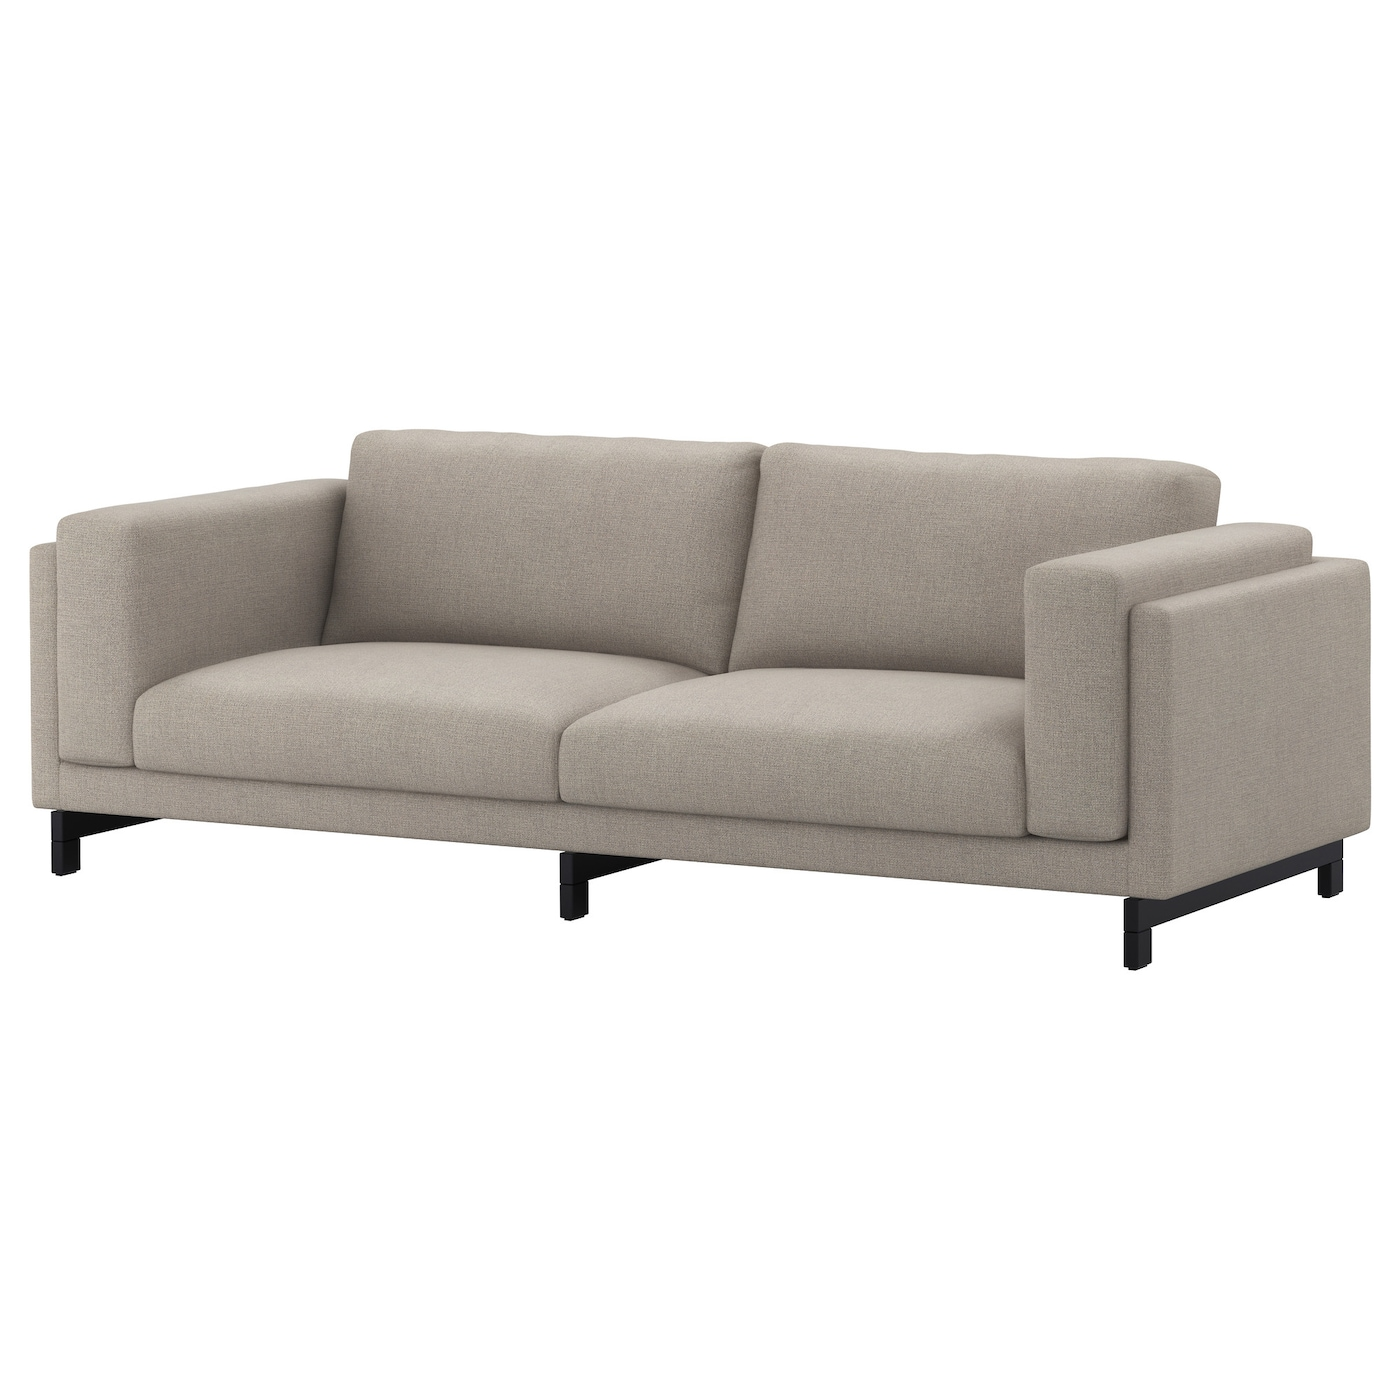 NOCKEBY Three seat sofa Ten u00f6 light grey  wood   IKEA